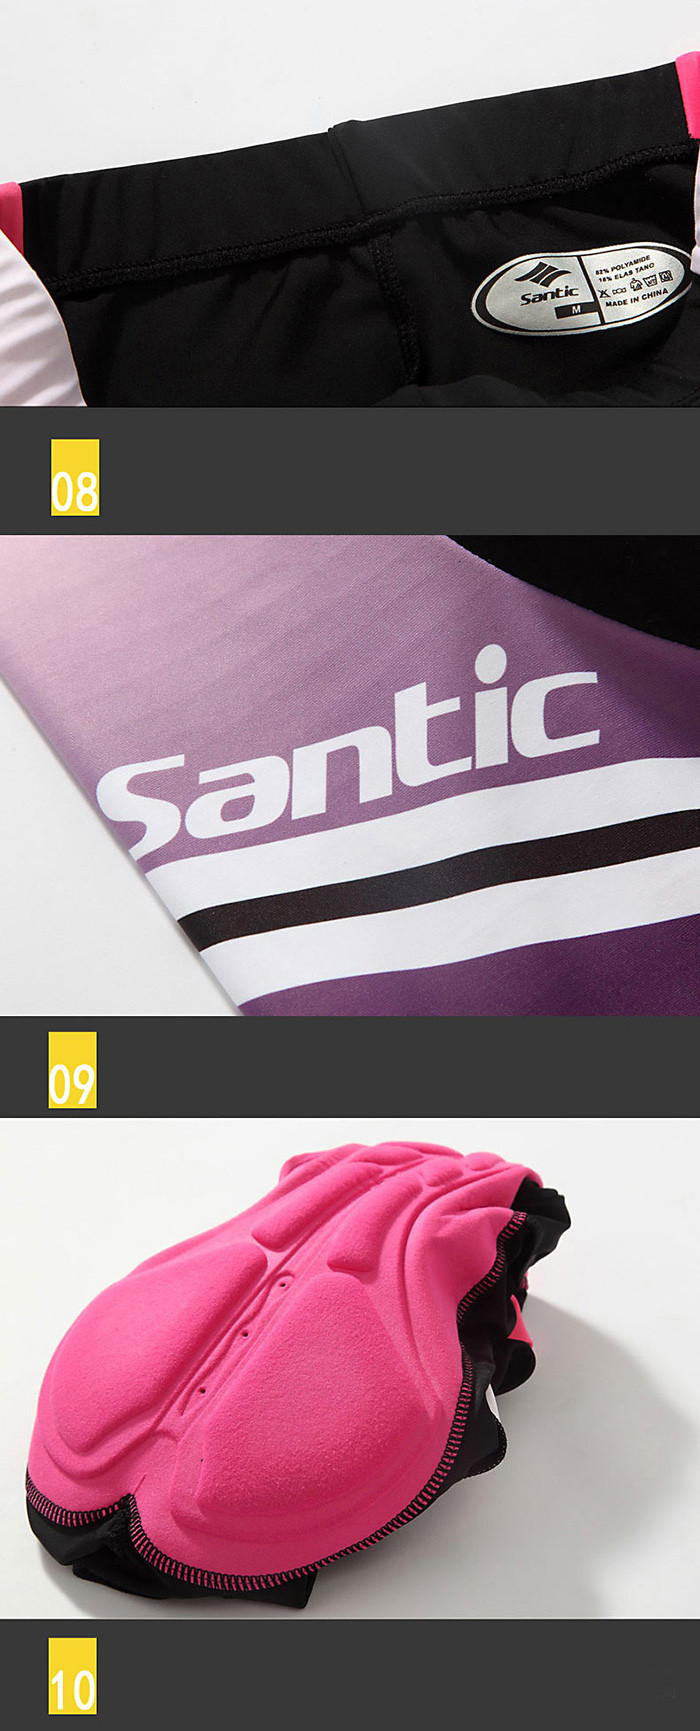 Santic LCT035 Female Cycling Short Sleeves Suit 4D Stereo Foam Cushion